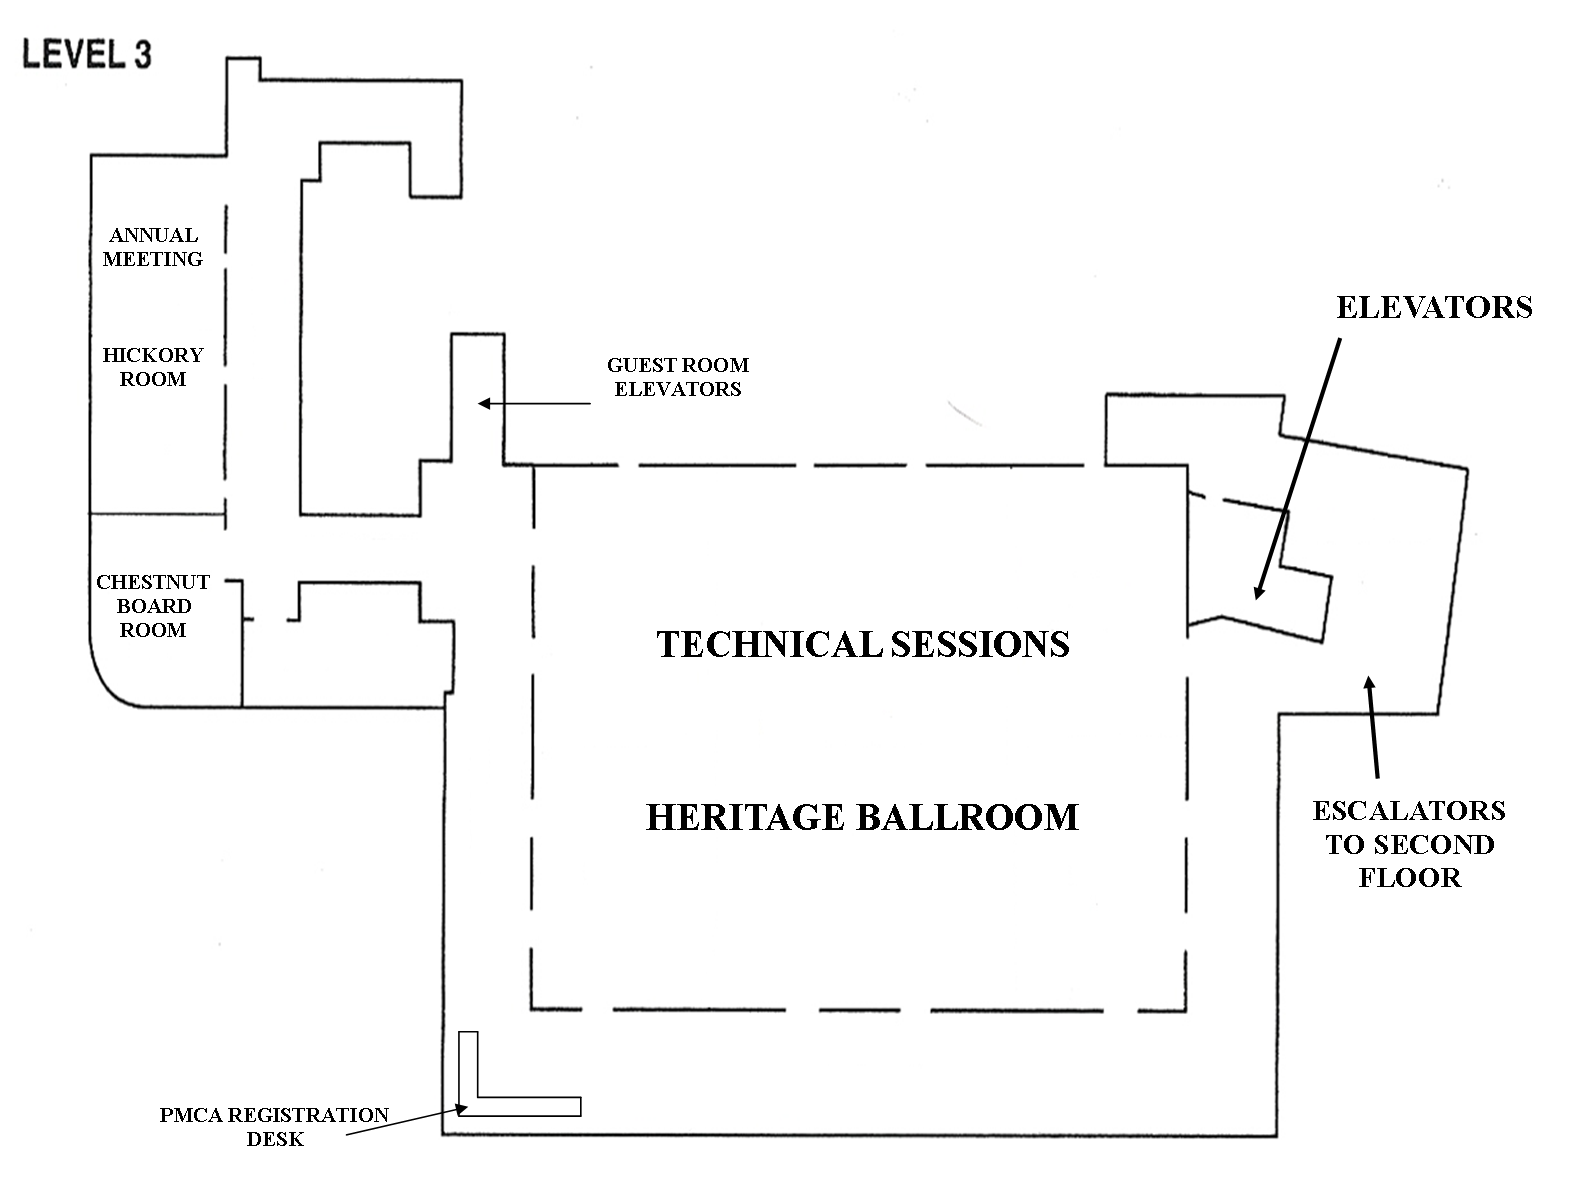 Conference exhibit floor plans pmca conference floor plan level 3 publicscrutiny Choice Image